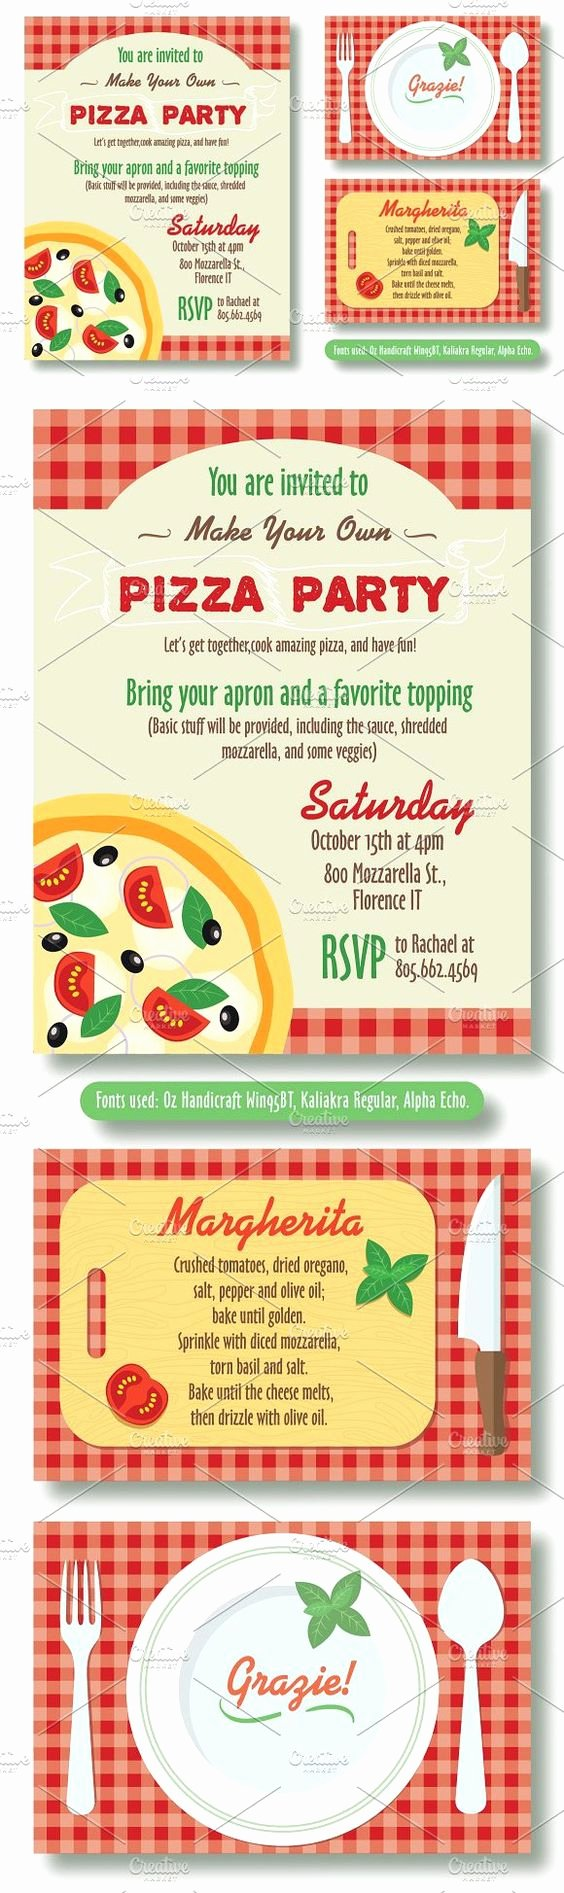 Pizza Party Invitation Template Word Beautiful Editable Pizza Party Invitation